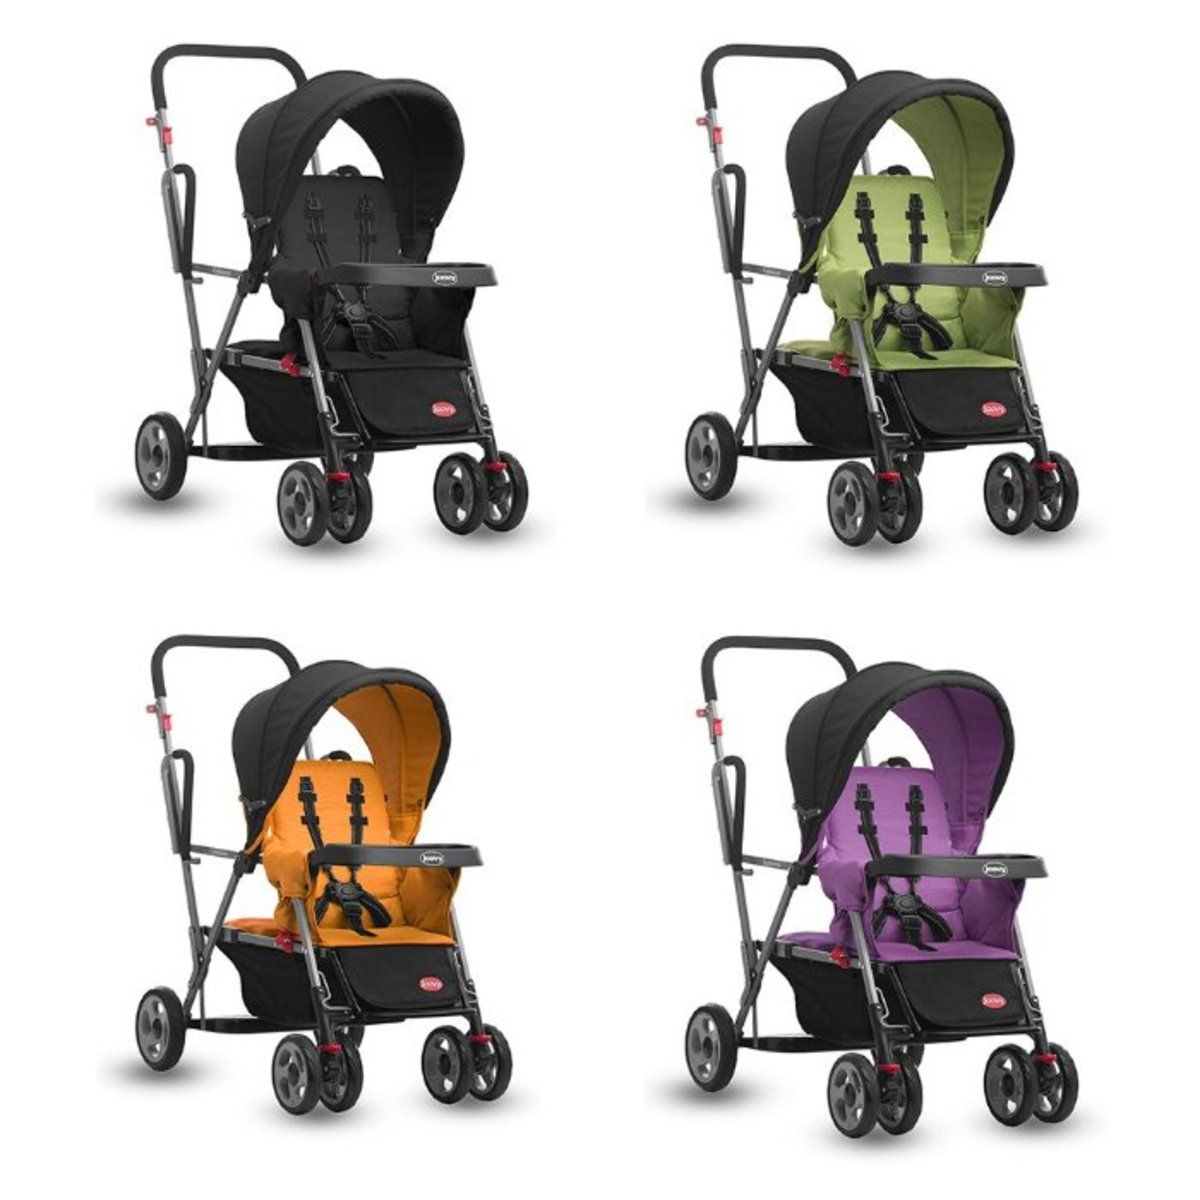 The Best Sit and Stand Strollers | hubpages